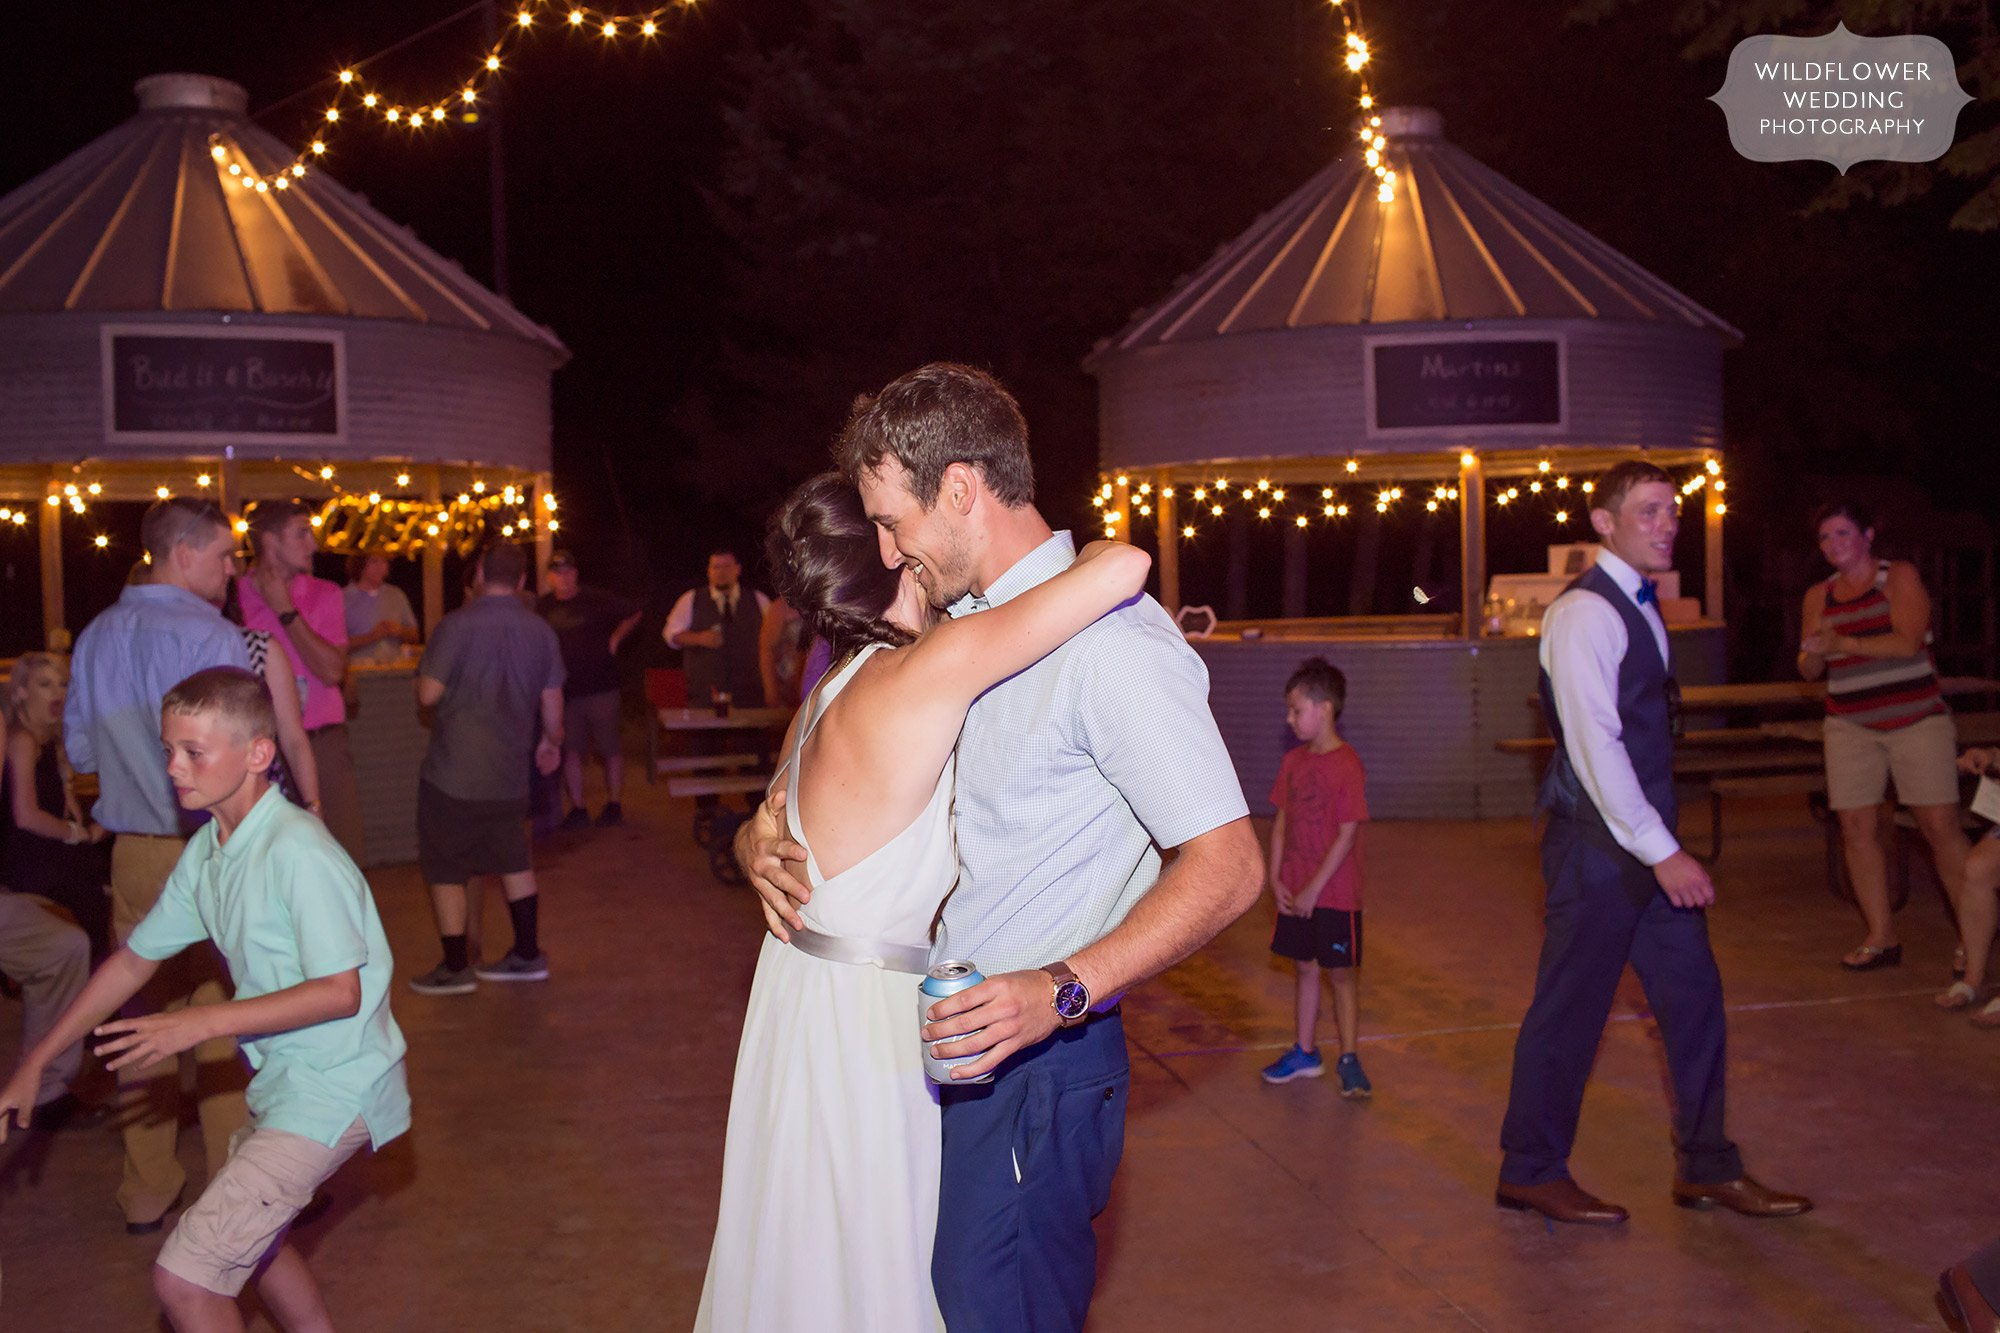 Dancing on the outdoor patio for this wedding reception at Kempker's.